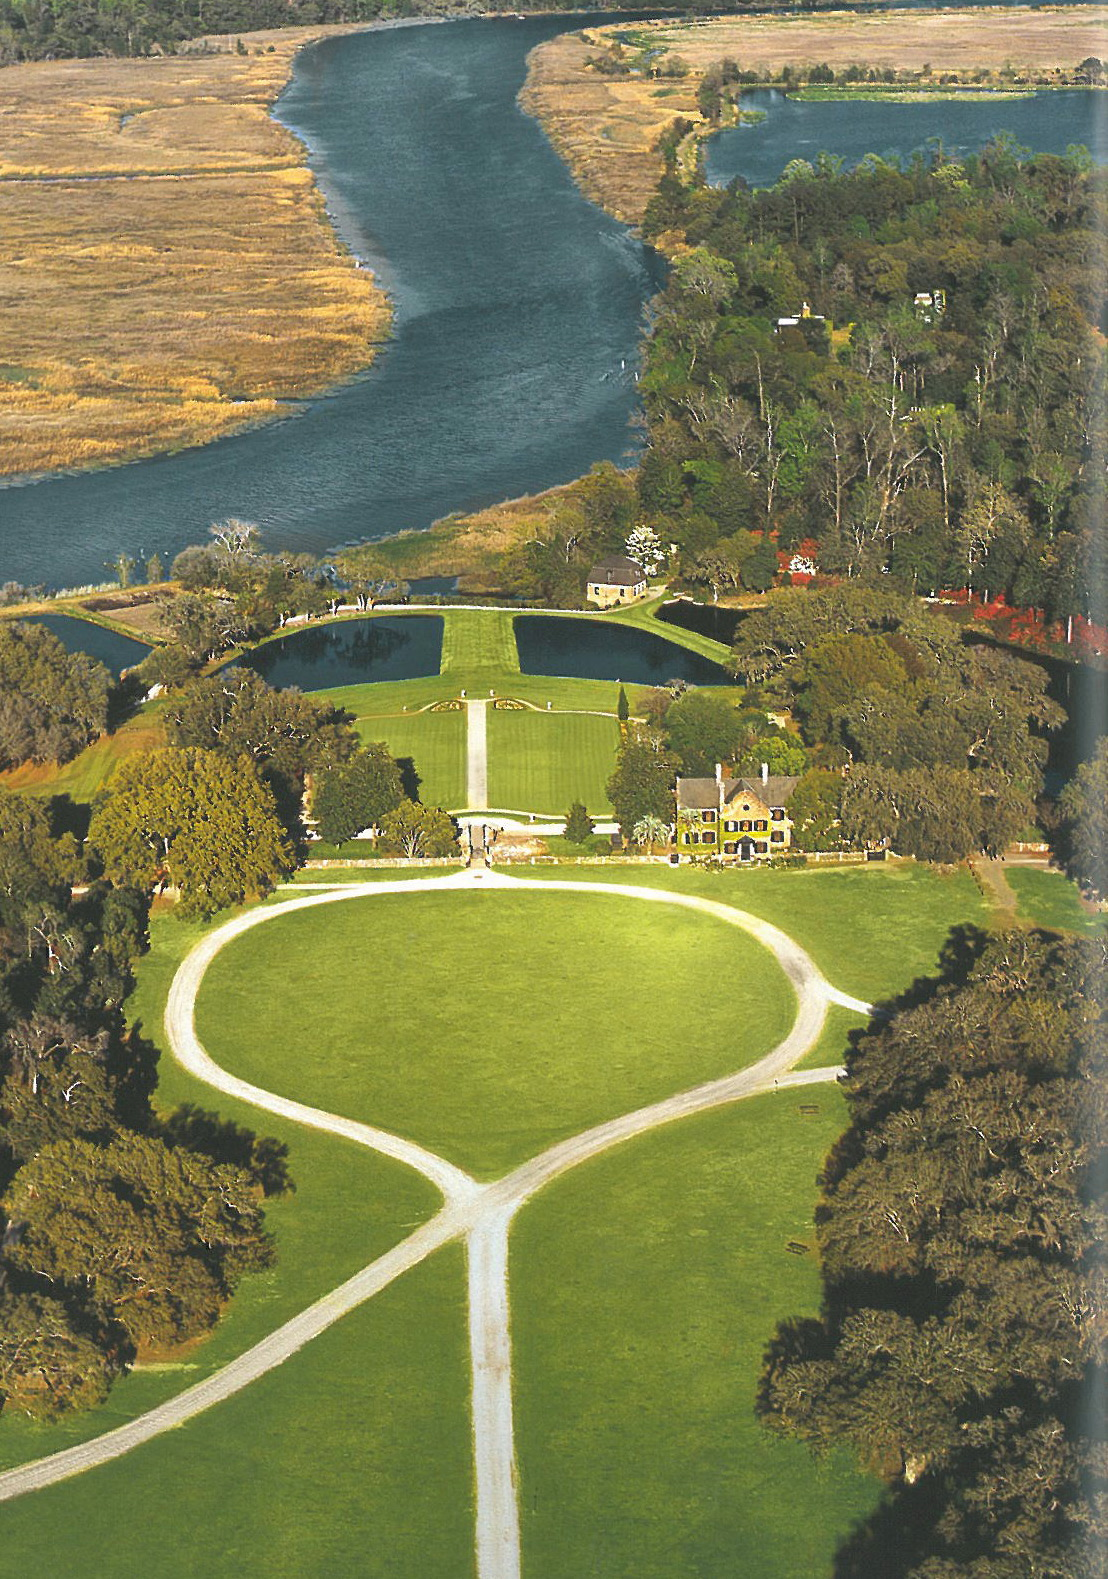 A Better View of the Sheep Meadow, and Greensward Circle. Image courtesy of the Middleton Place Foundation.